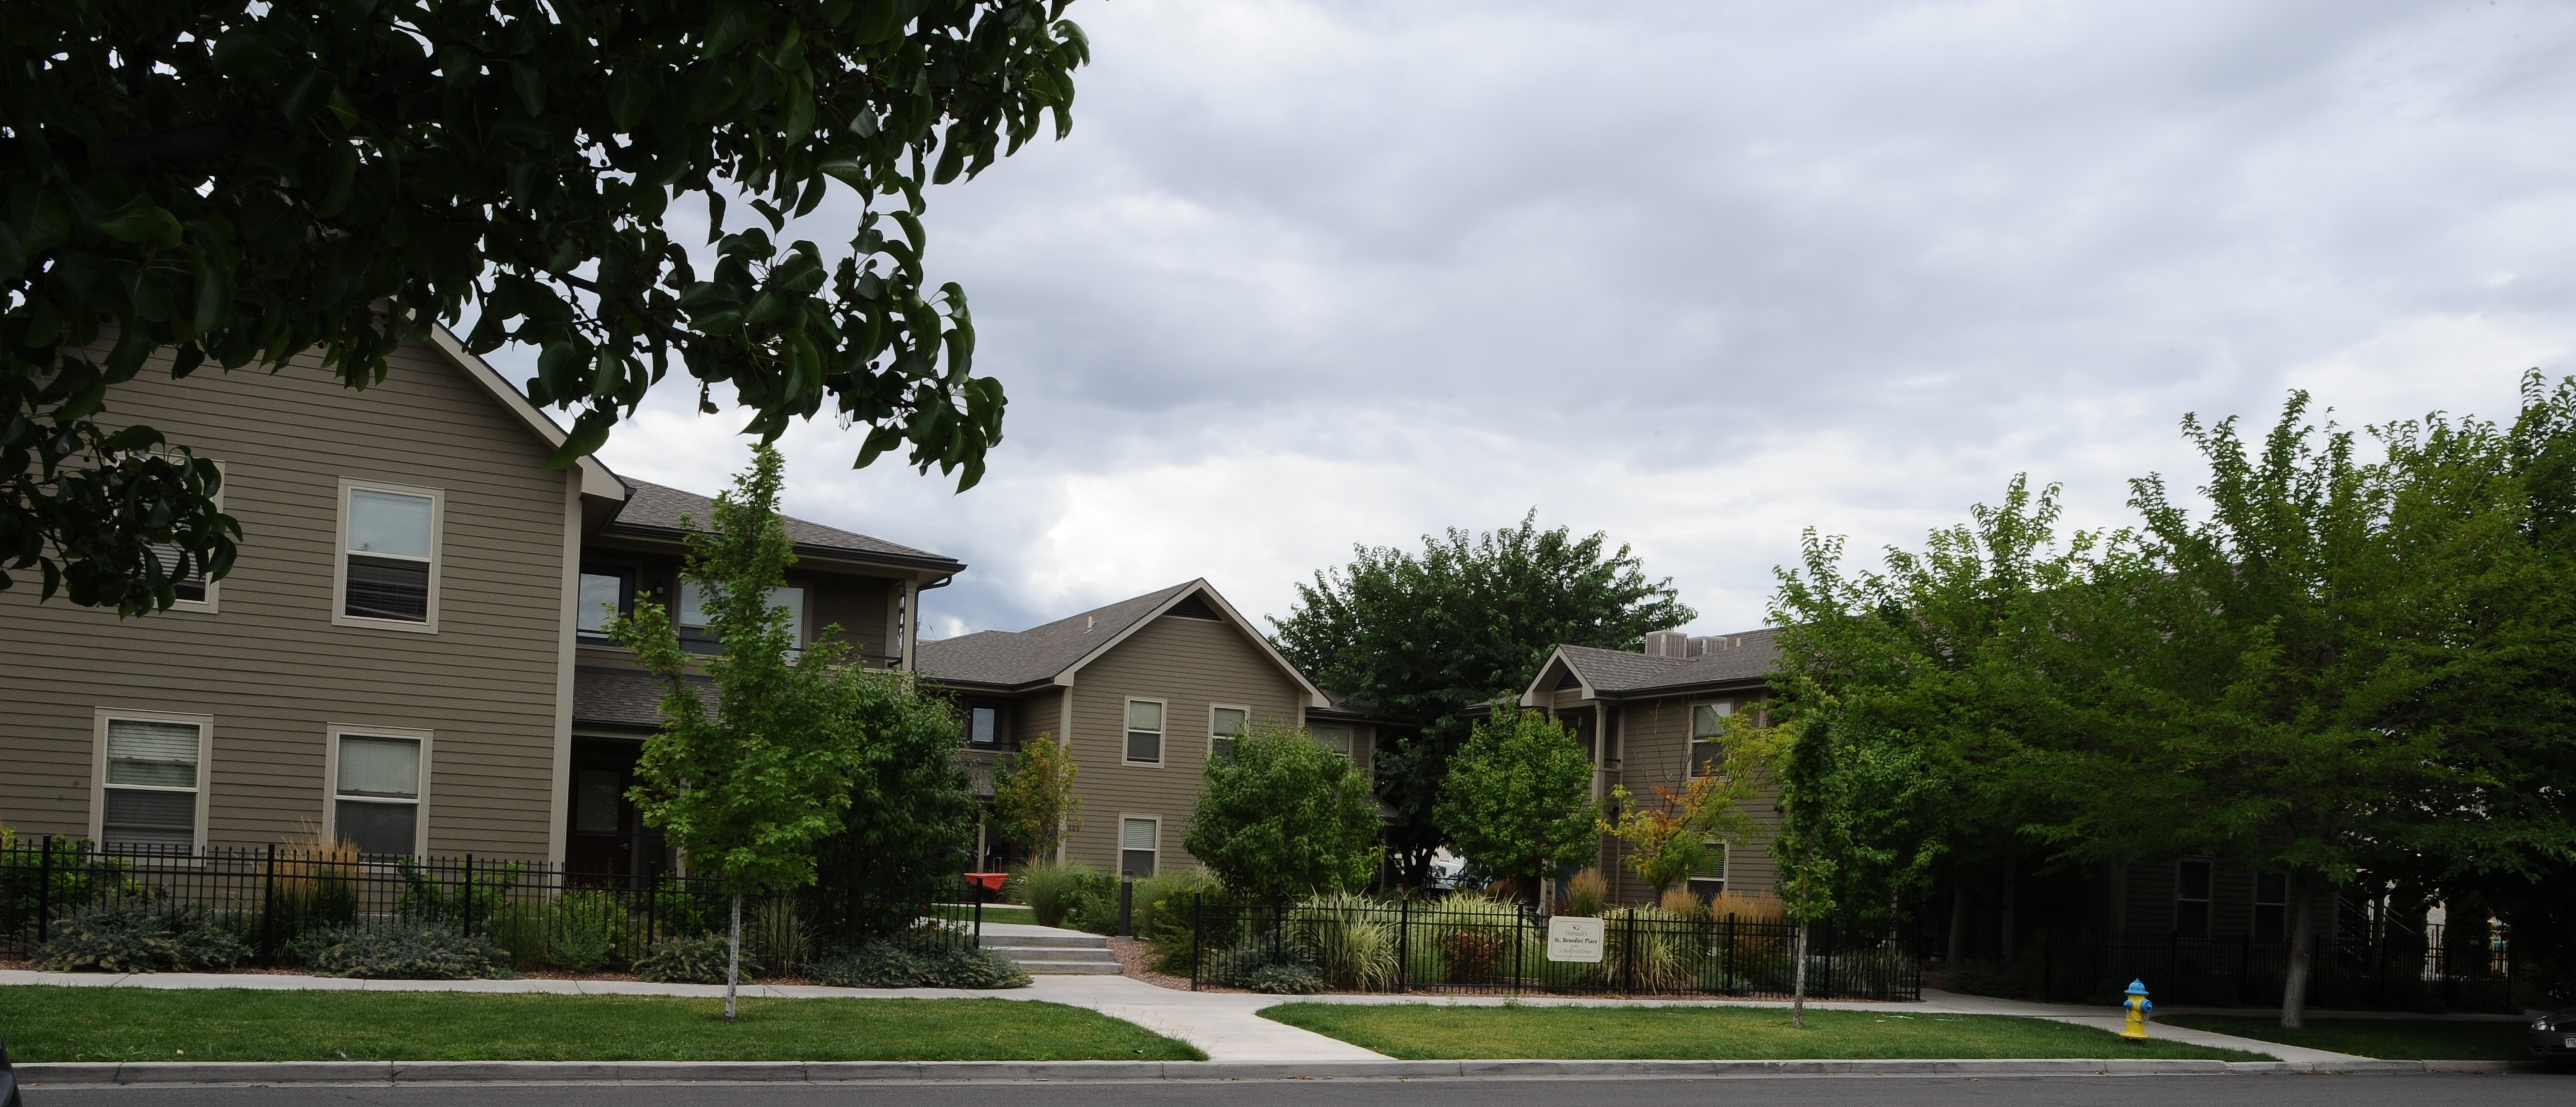 St. Benedict Place Picture, a CoC-funded Permanent Supportive Housing or PSH Program in Grand Junction, Colorado